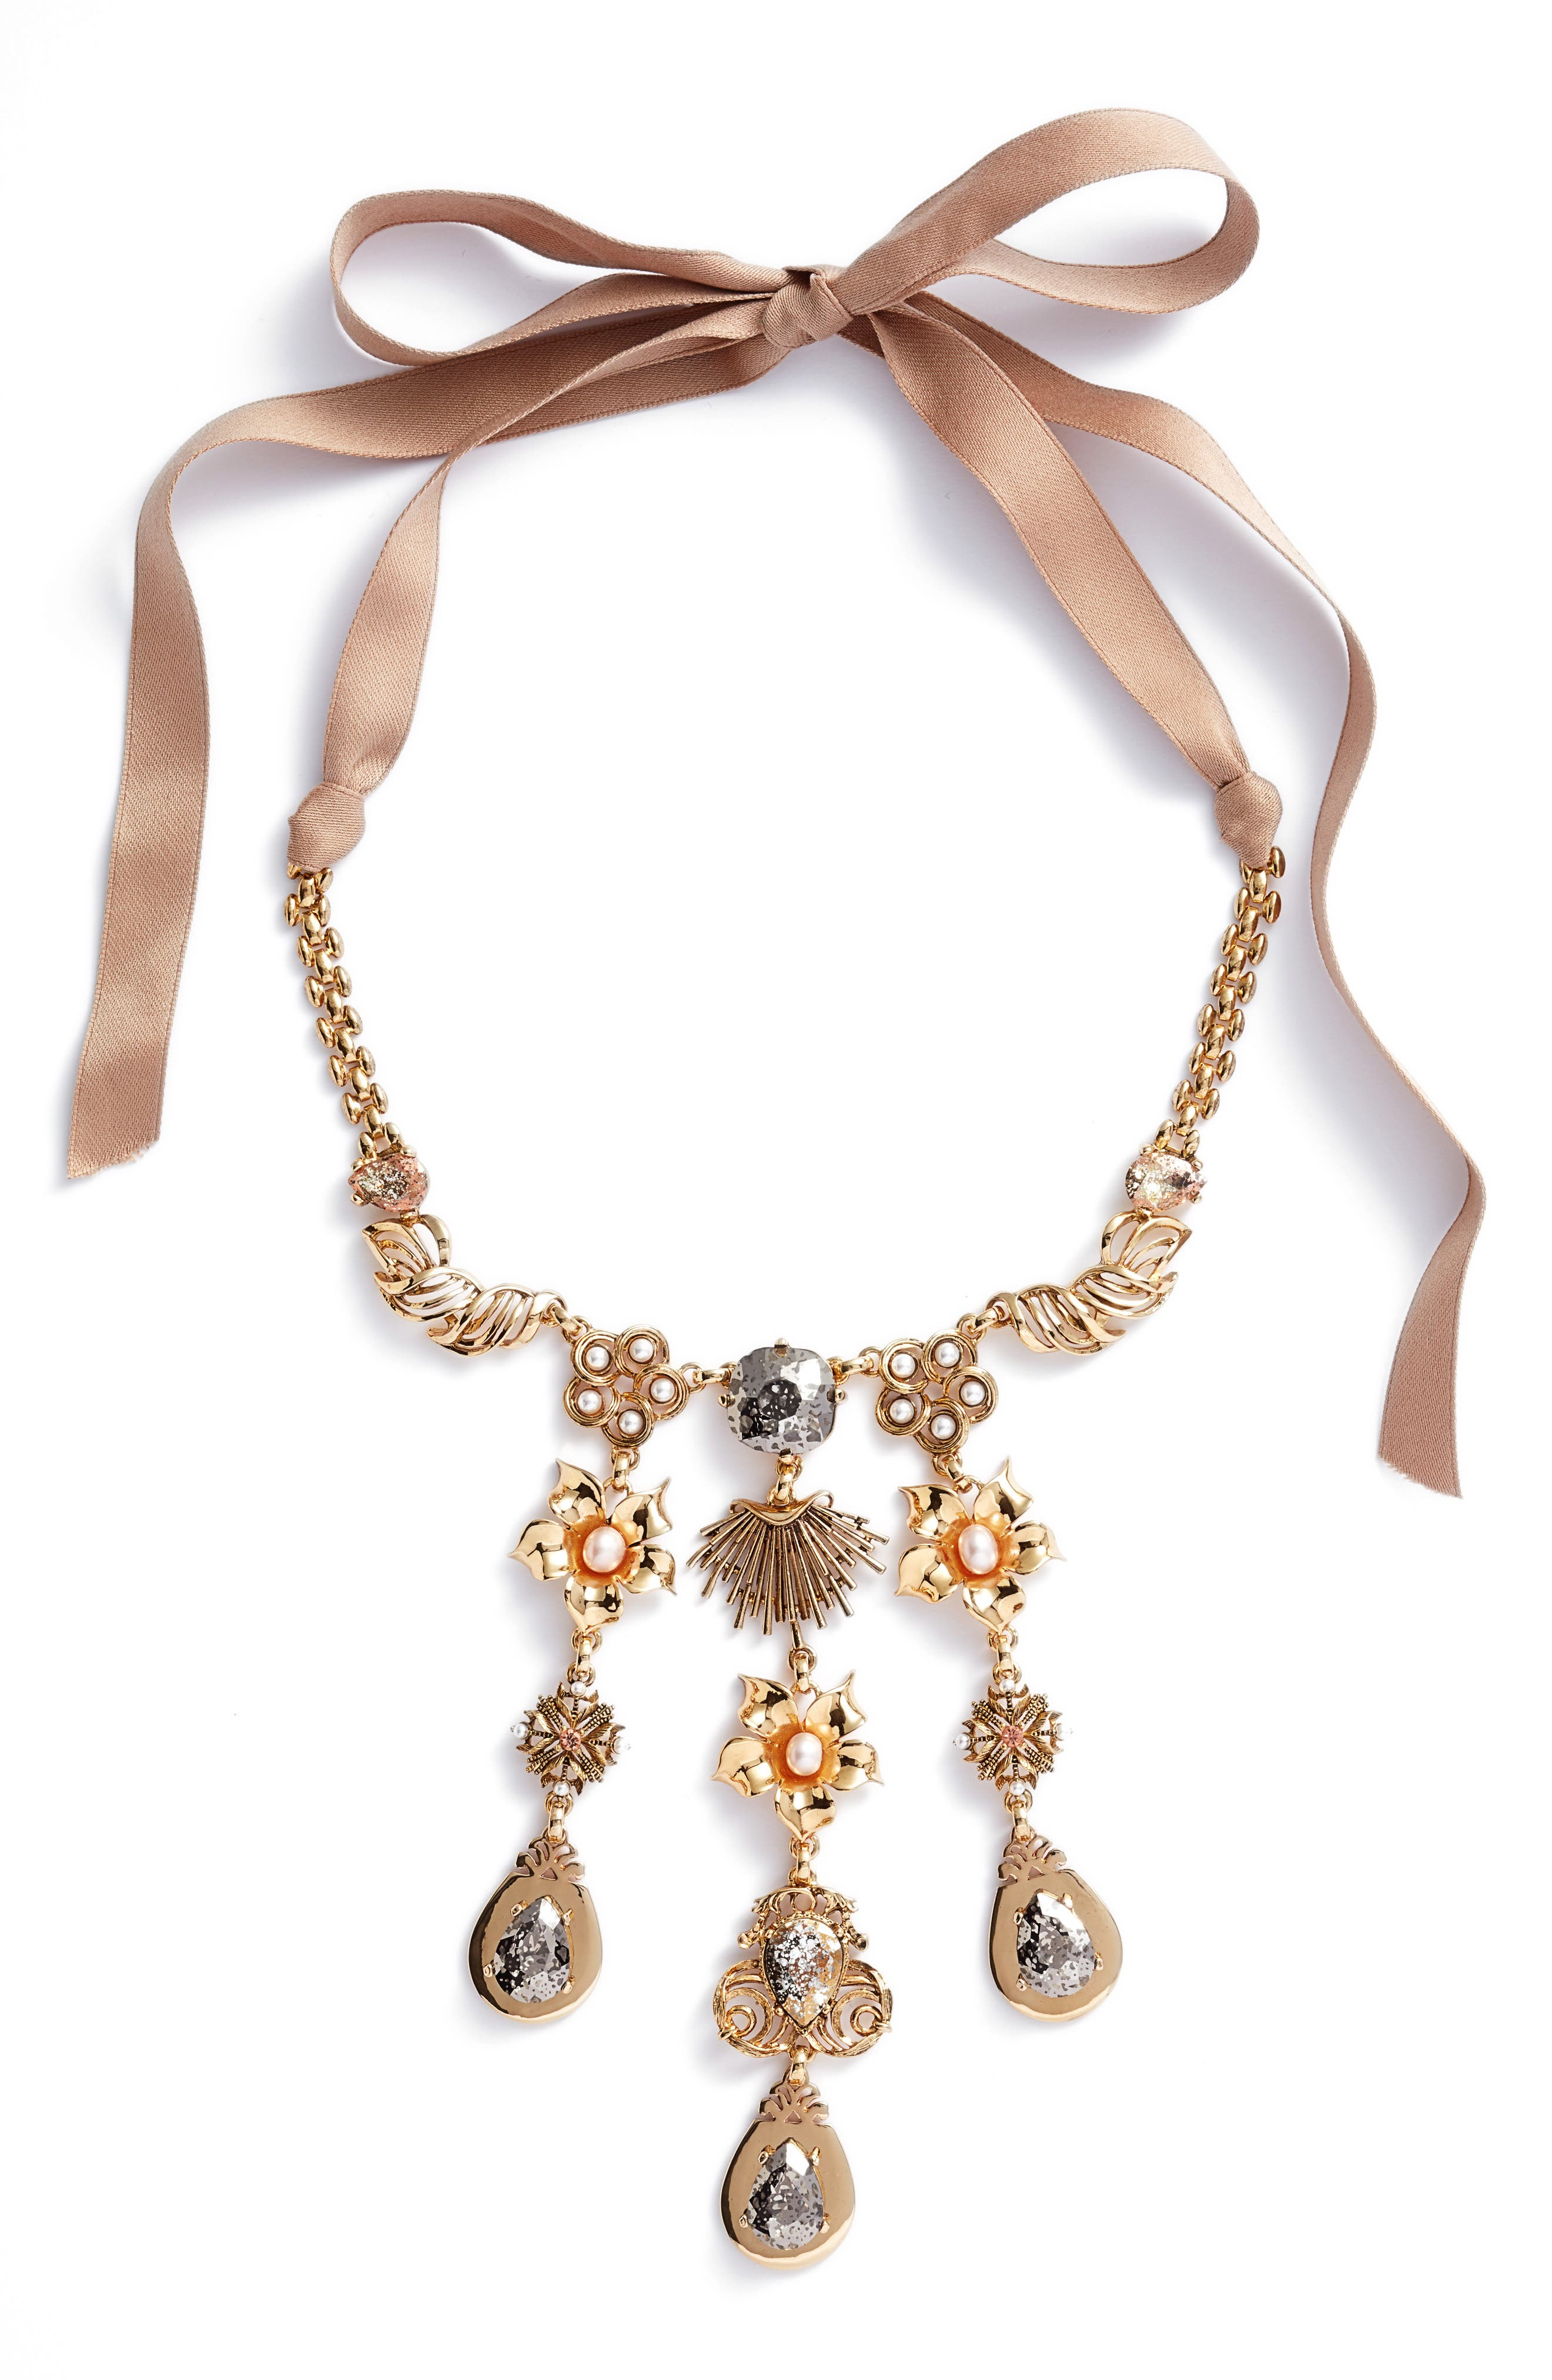 Main Image - Badgley Mischka Crystal & Freshwater Pearl Collar Necklace